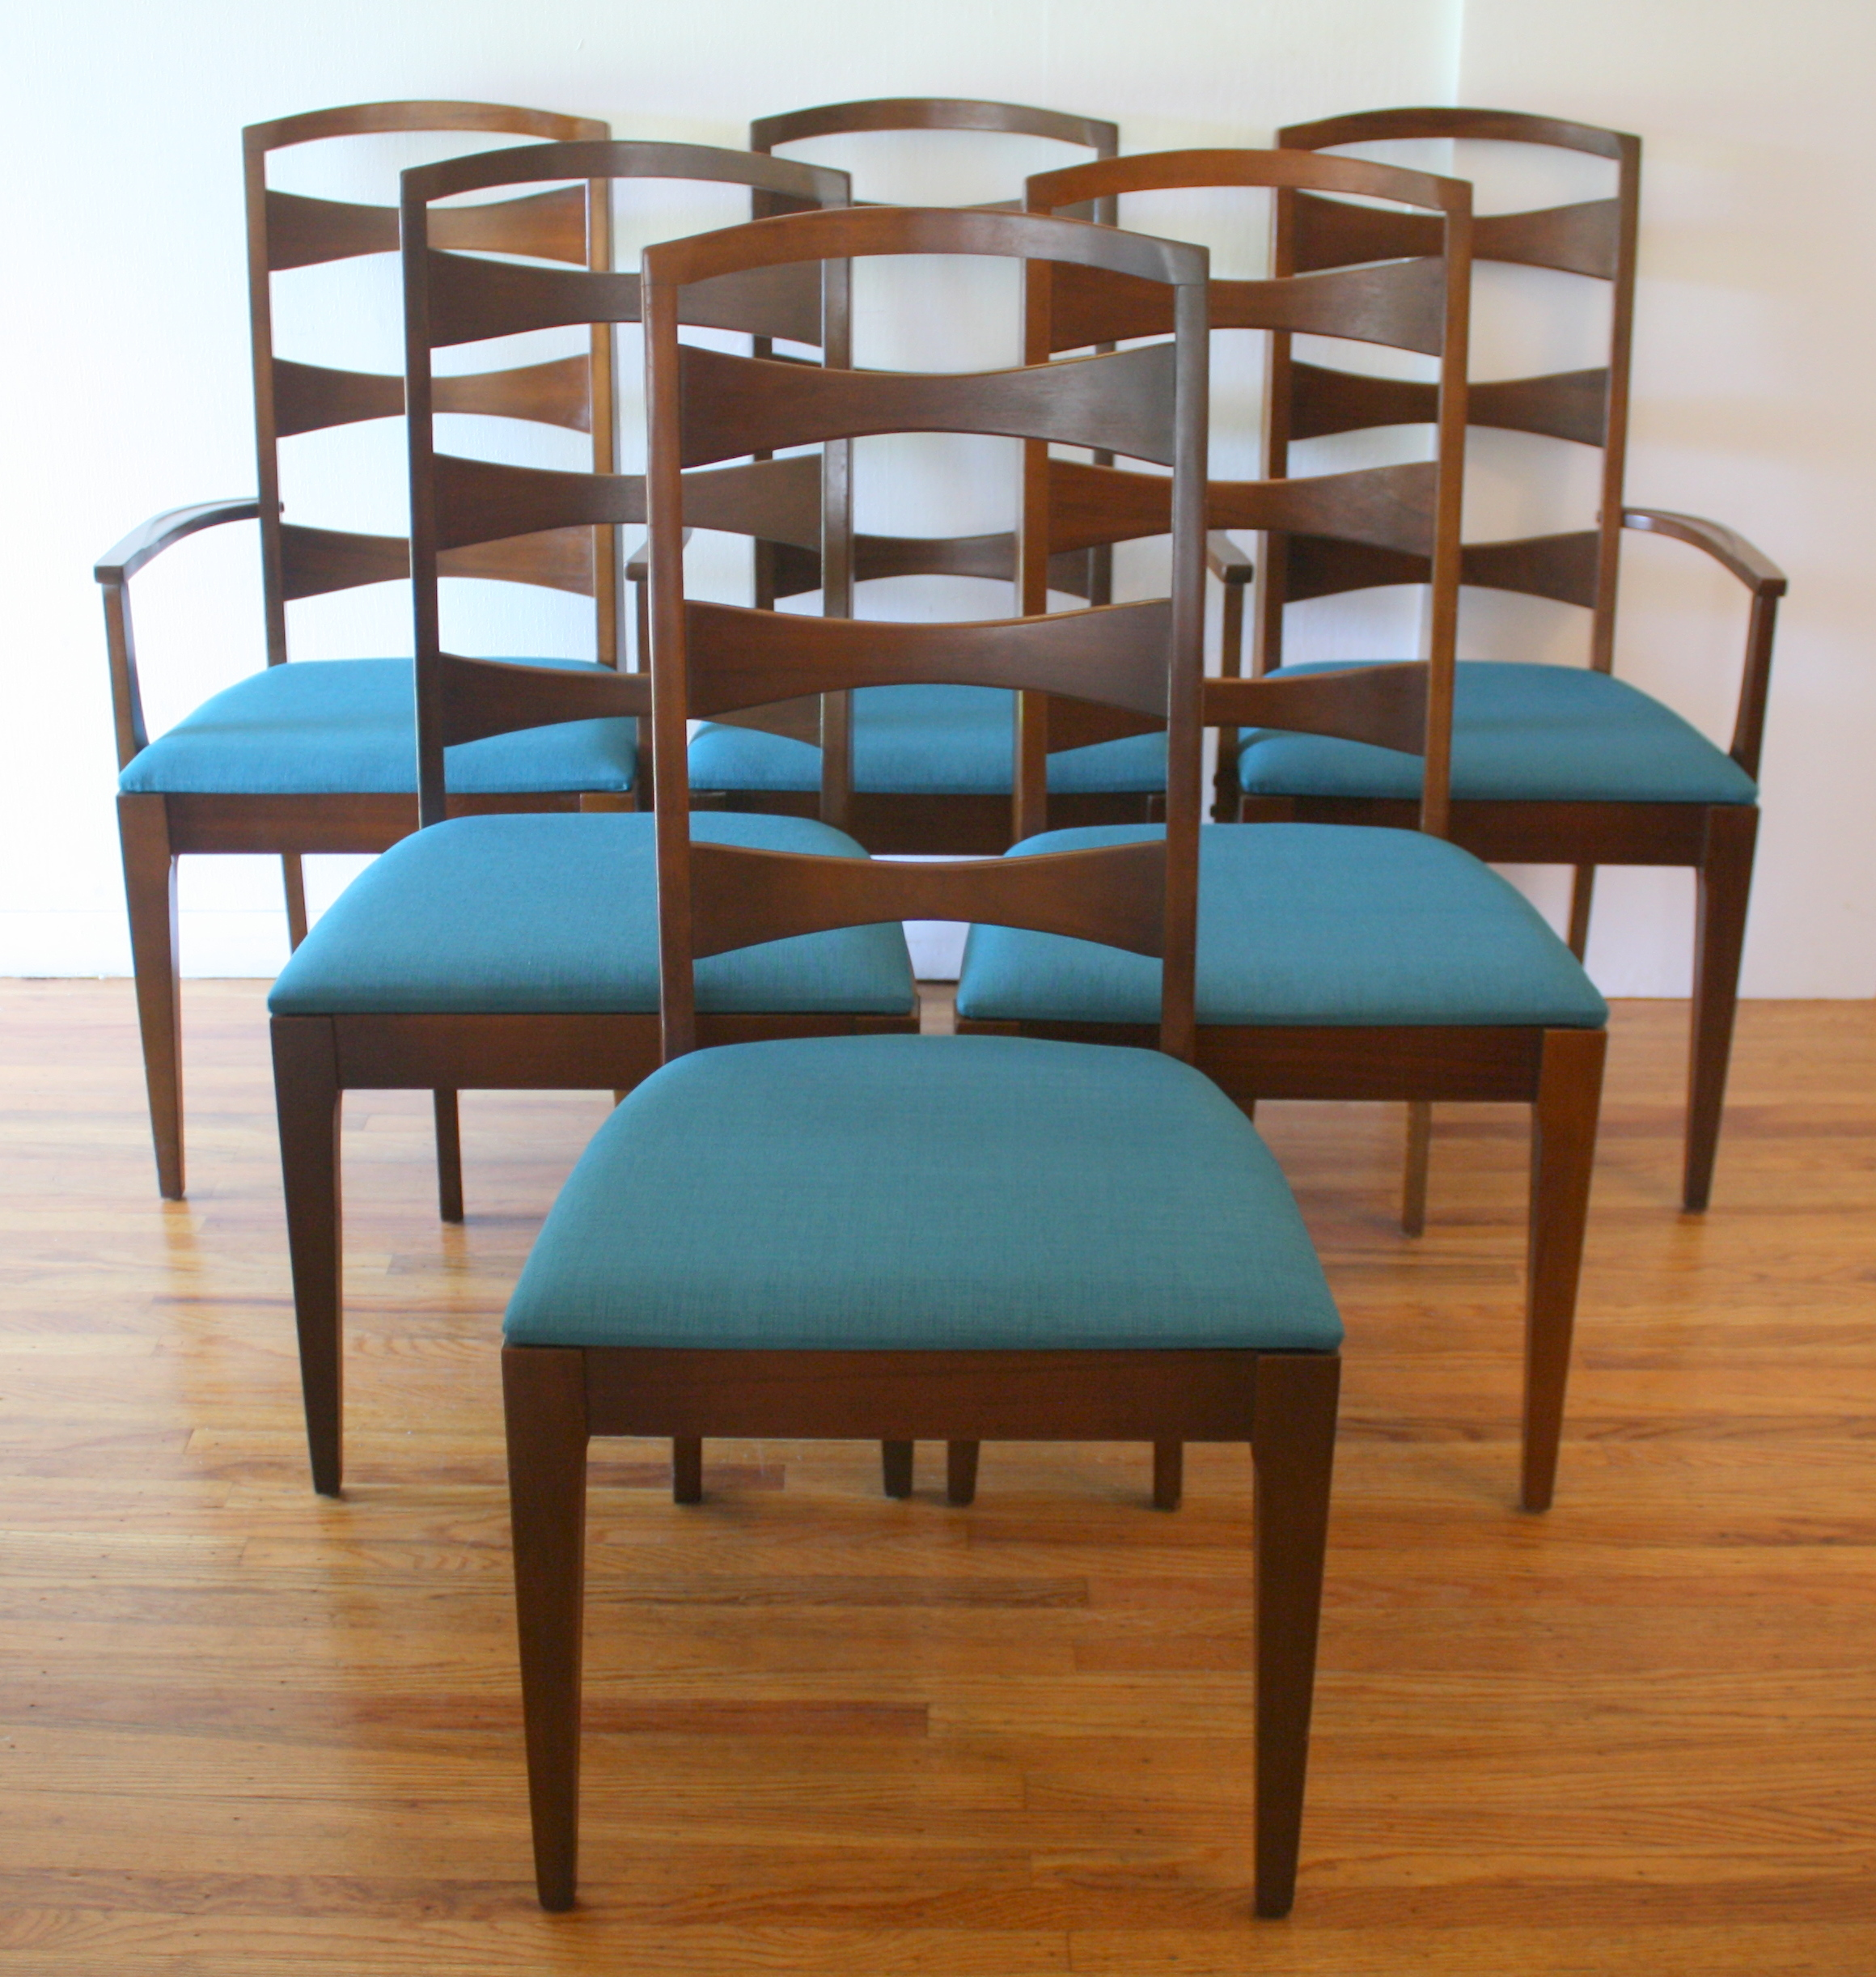 Midcentury Modern Dining Chairs: Mid Century Modern Dining Chair Sets By Broyhill